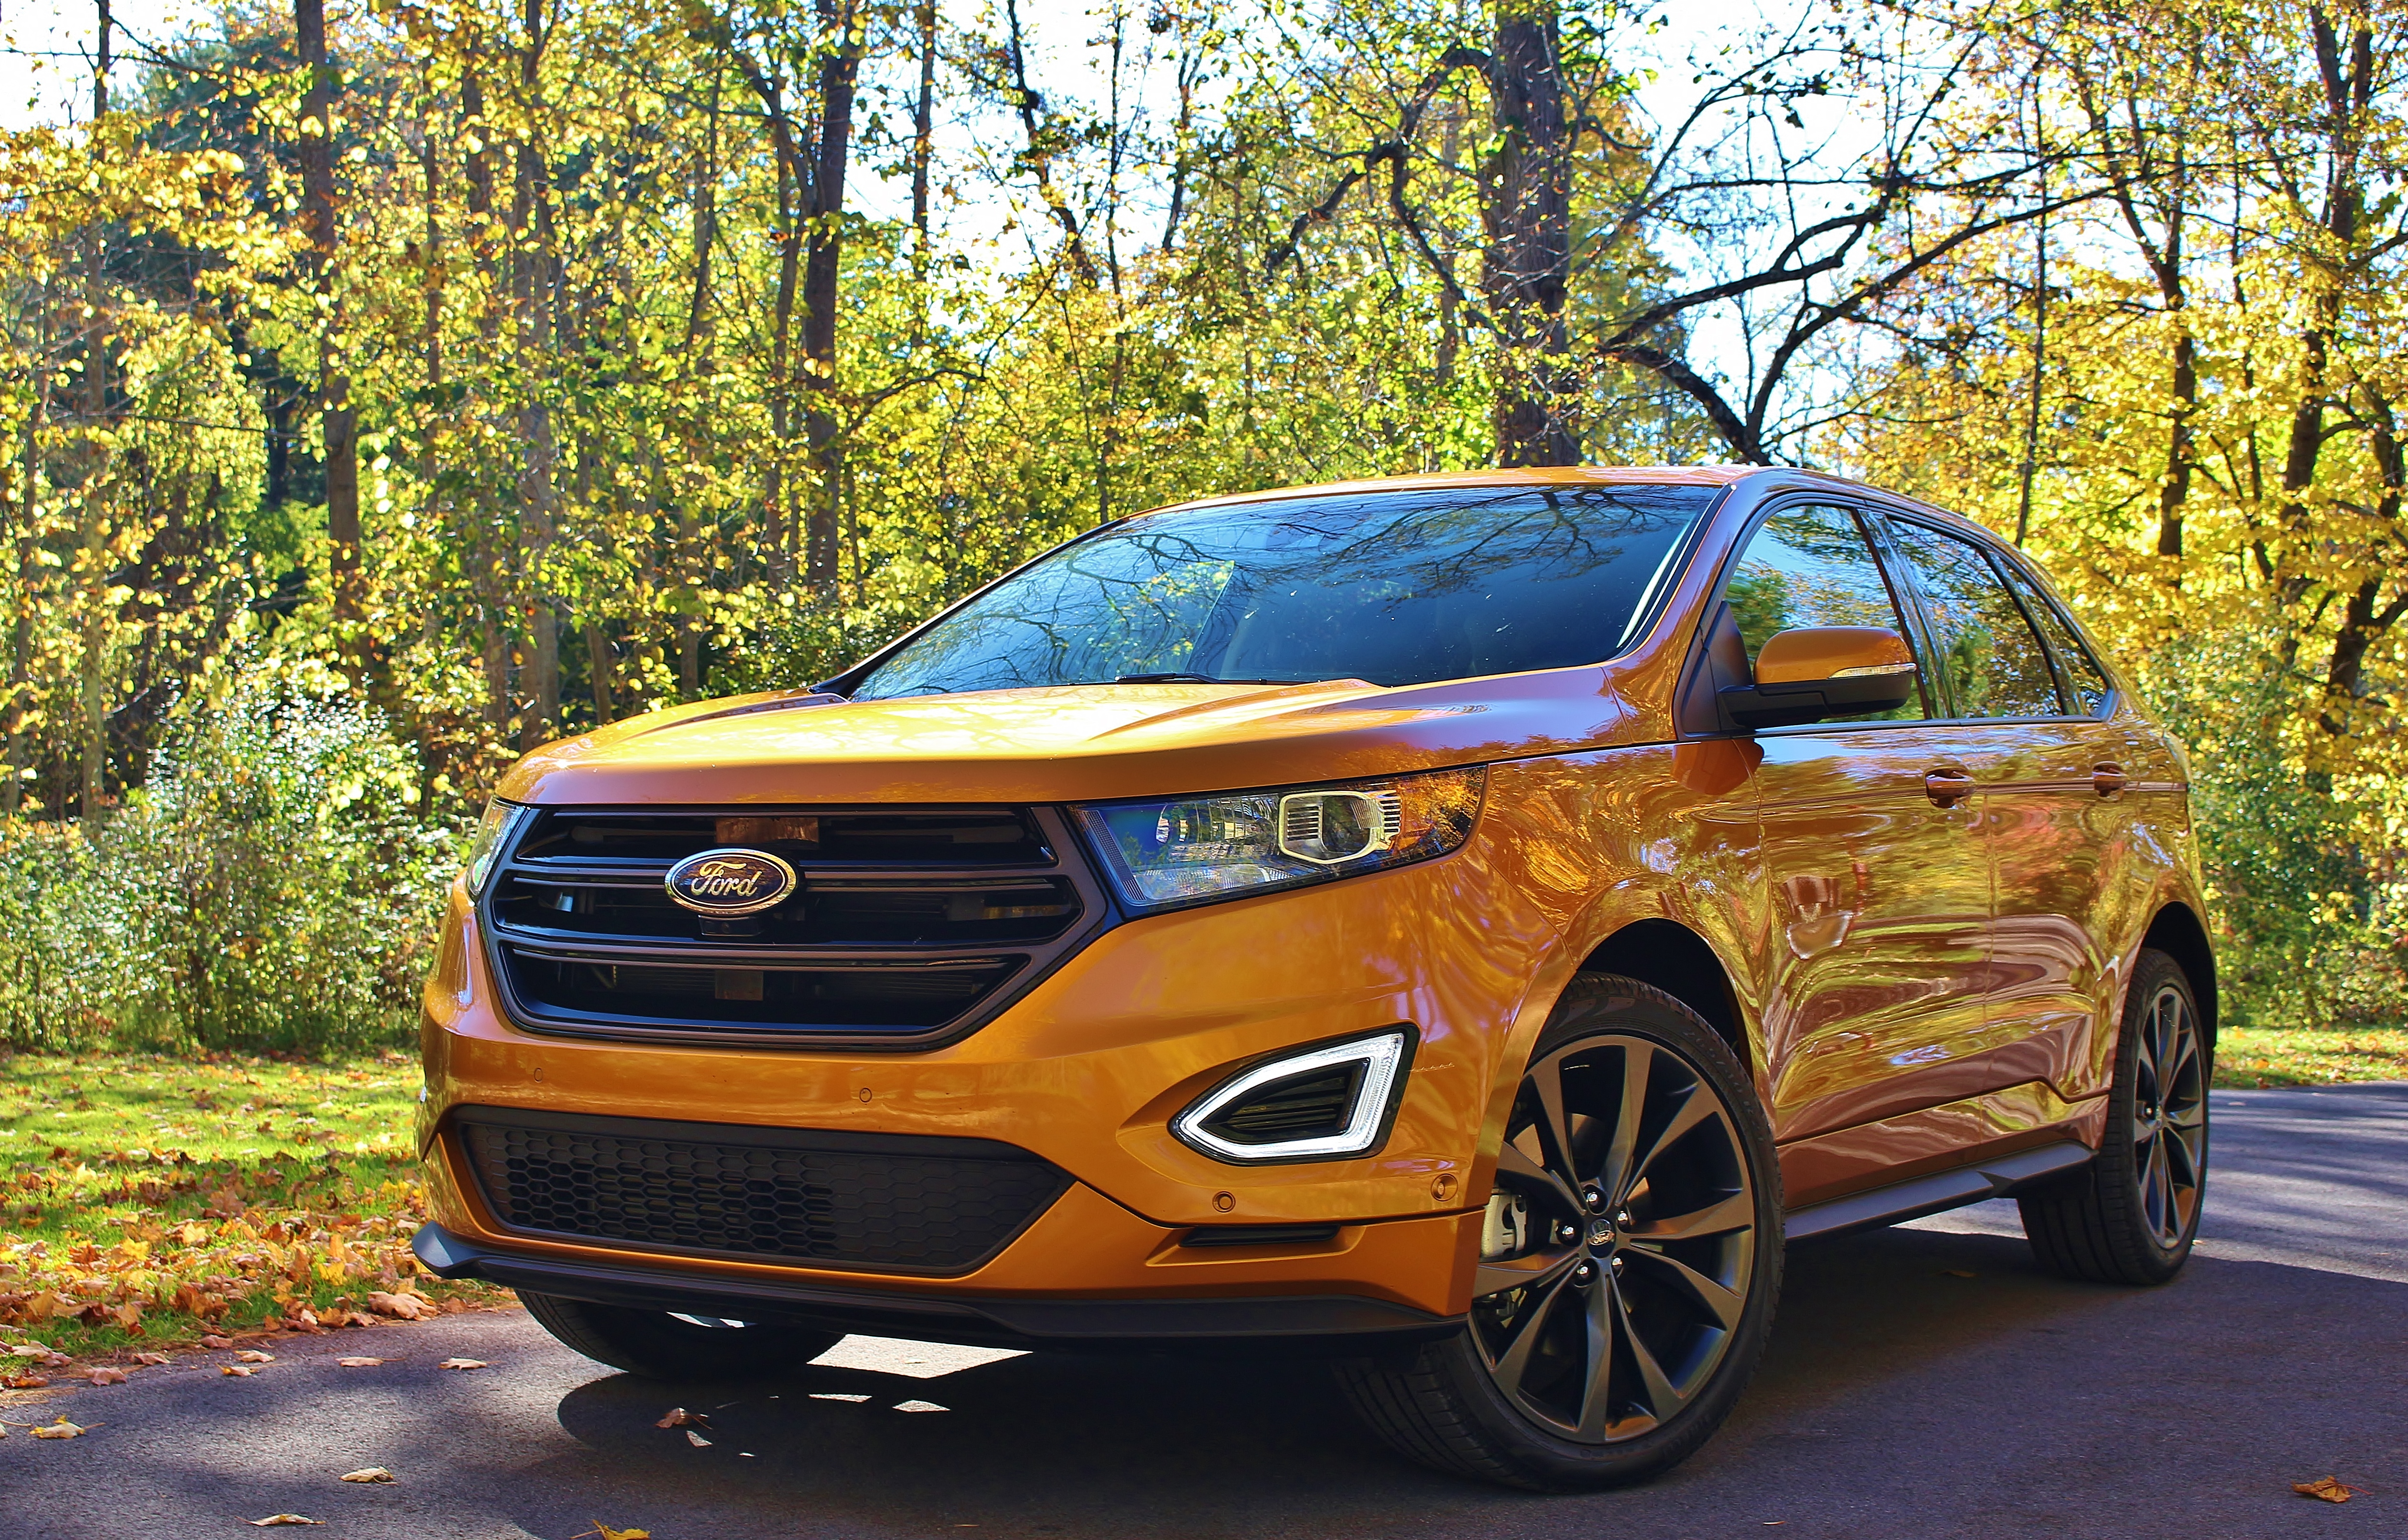 tn ford sale motor owned in htm featured rutledge se pre suv co jarnagin escape vehicles for